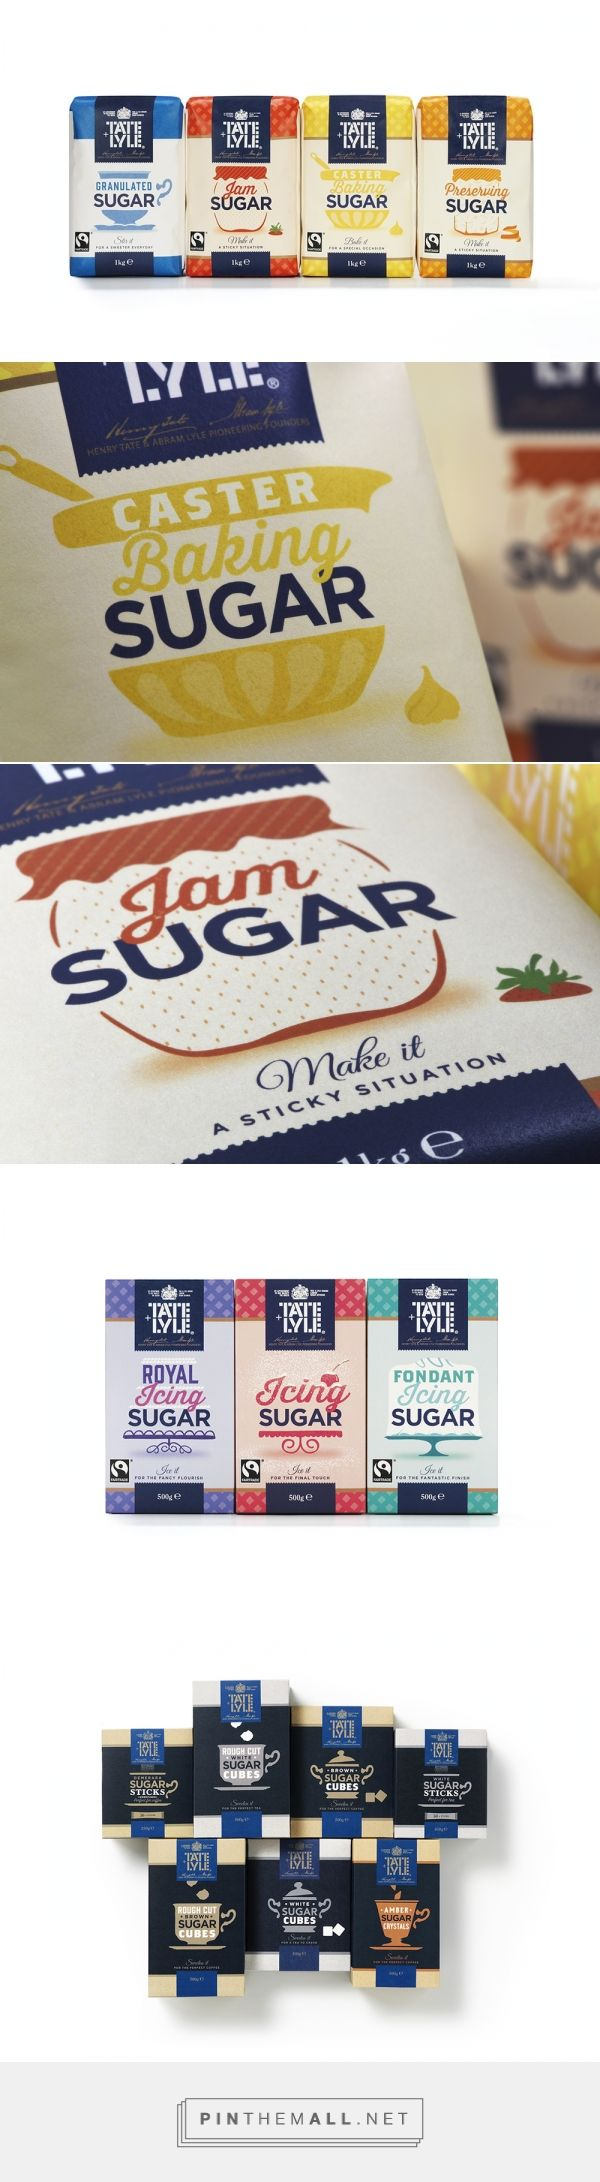 Tate & Lyle's Sugar Range / Design Bridge